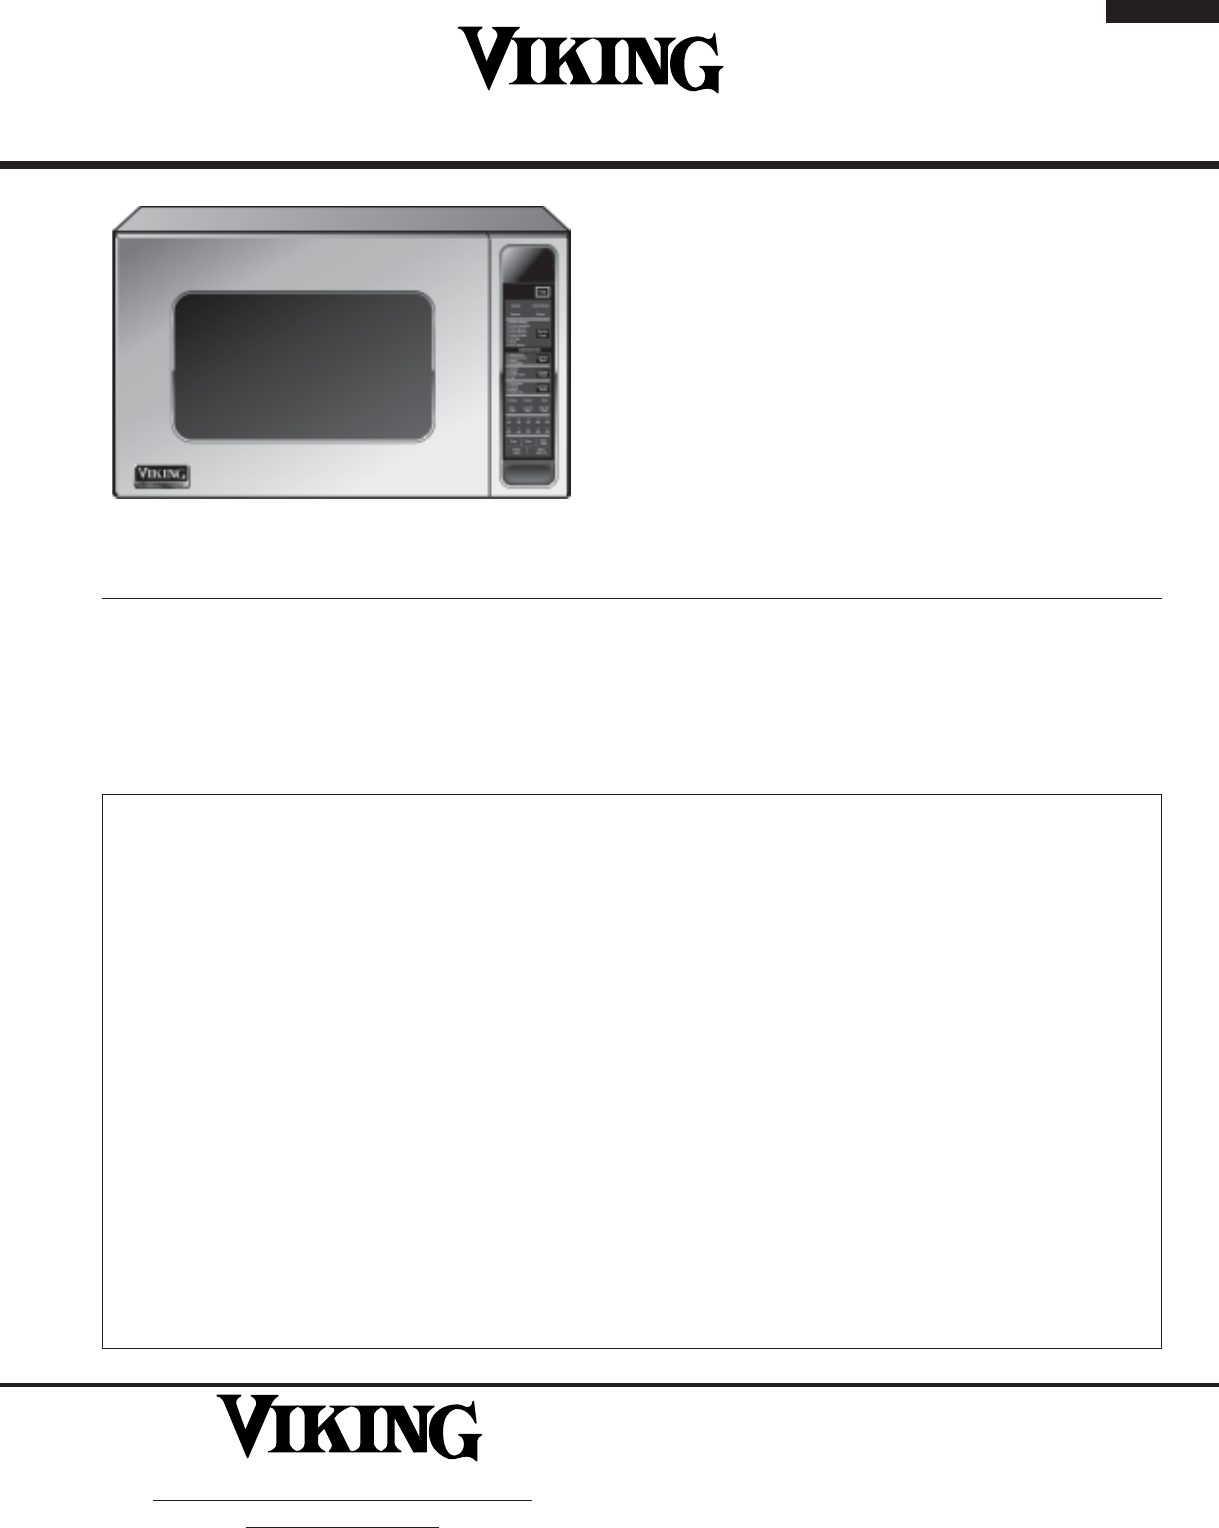 viking microwave oven vmoc205ss user guide manualsonline com rh kitchen manualsonline com Built in Microwave Convection Oven viking microwave convection oven instructions